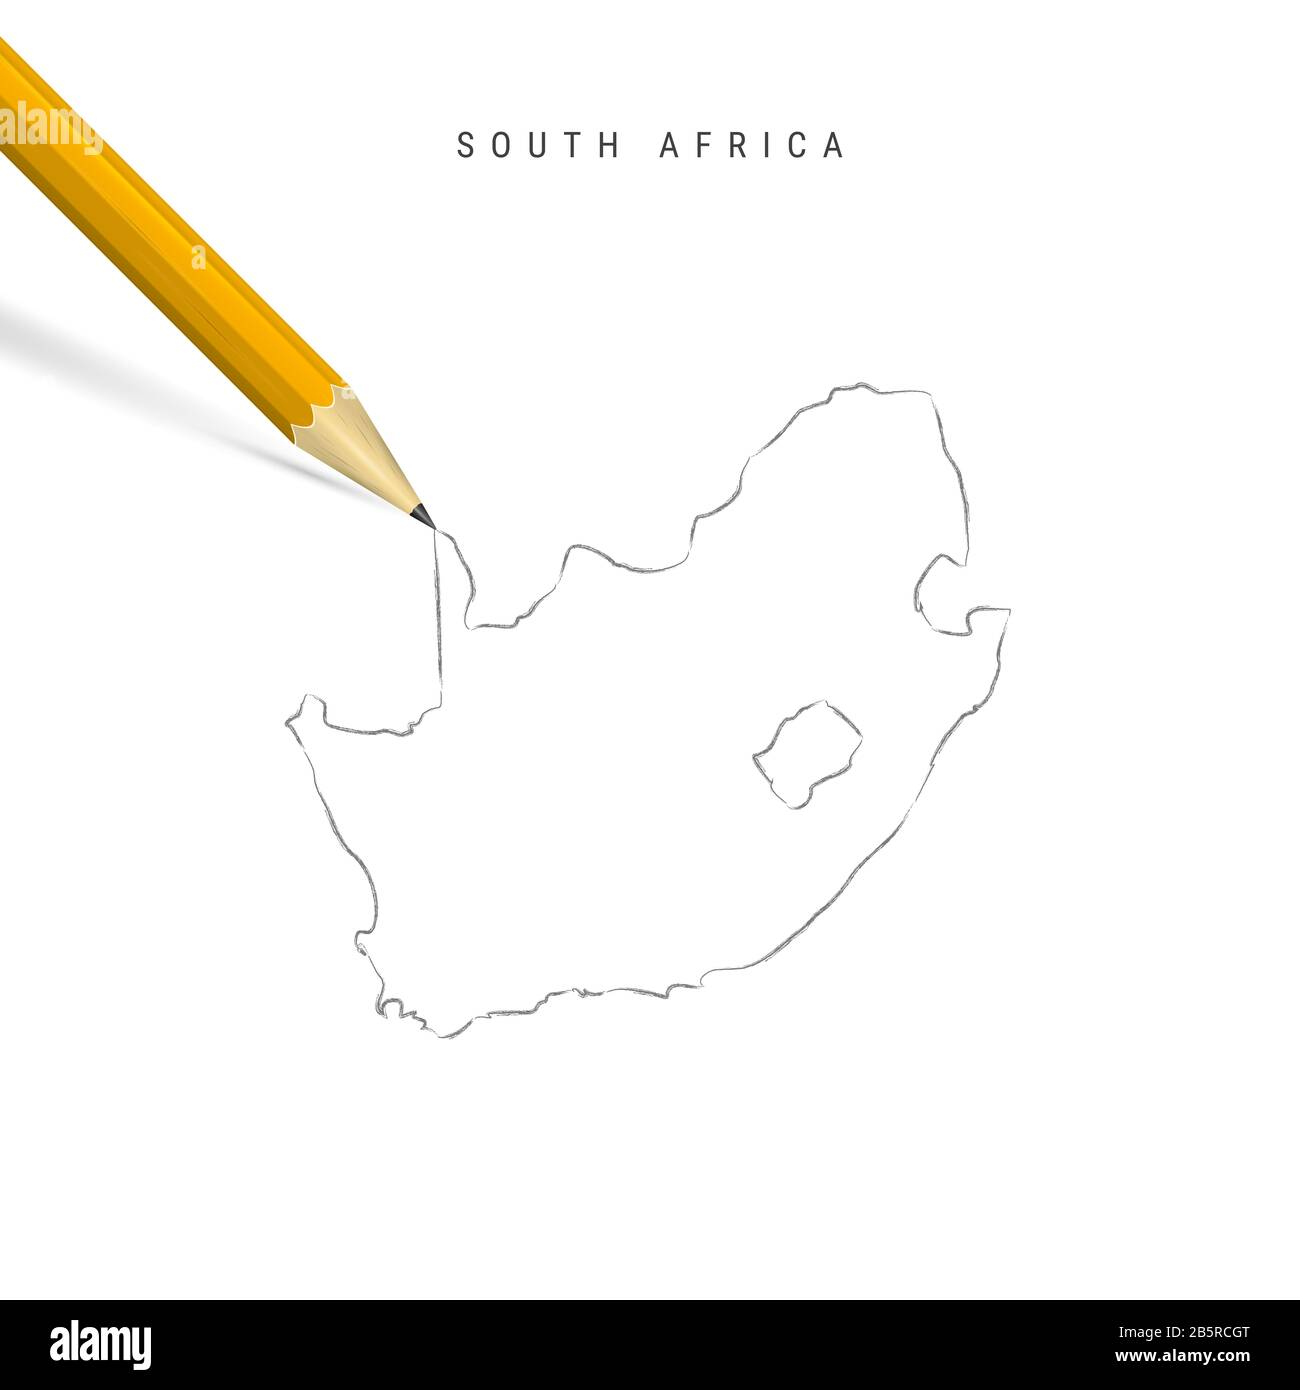 Image of: Sketch Map Of South Africa High Resolution Stock Photography And Images Alamy